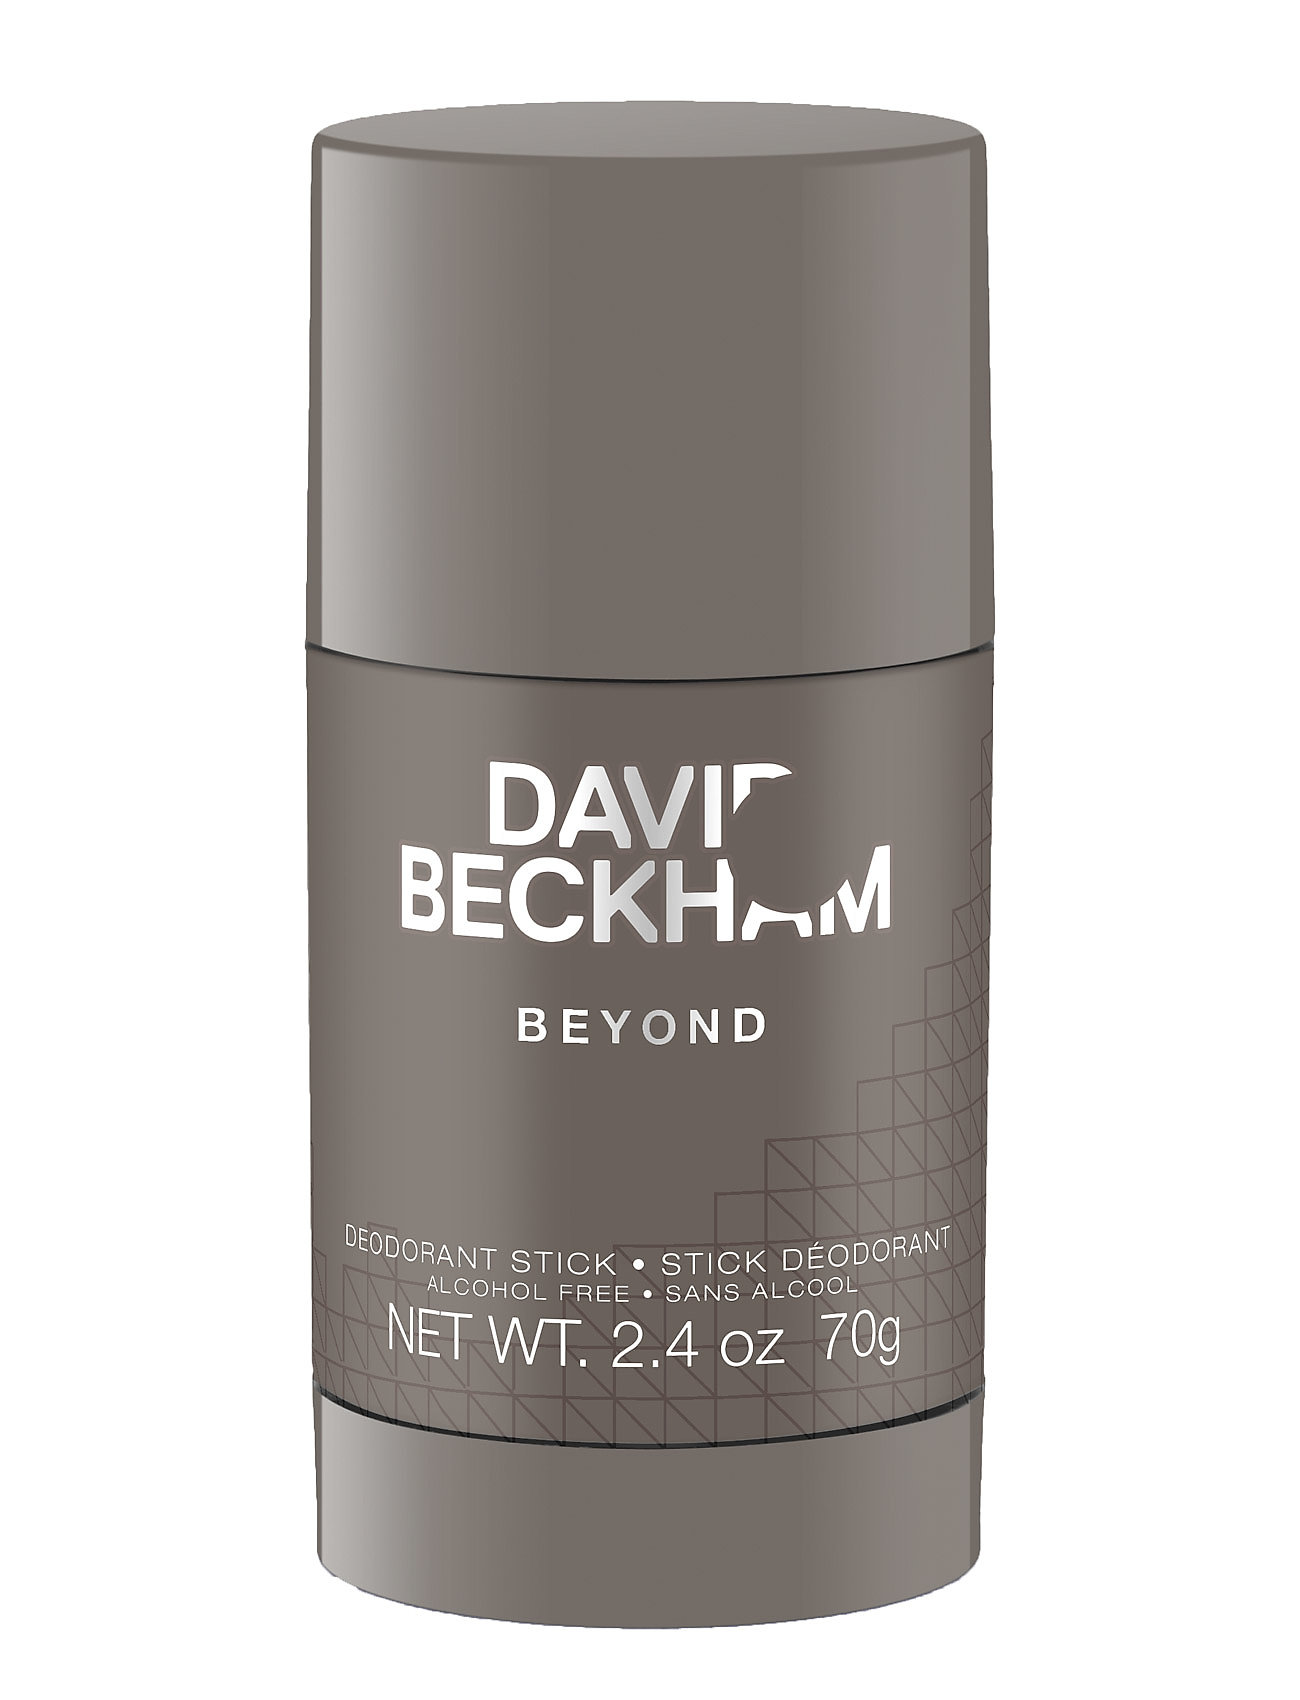 David beckham beyond deodorant stic fra david beckham – beauty men